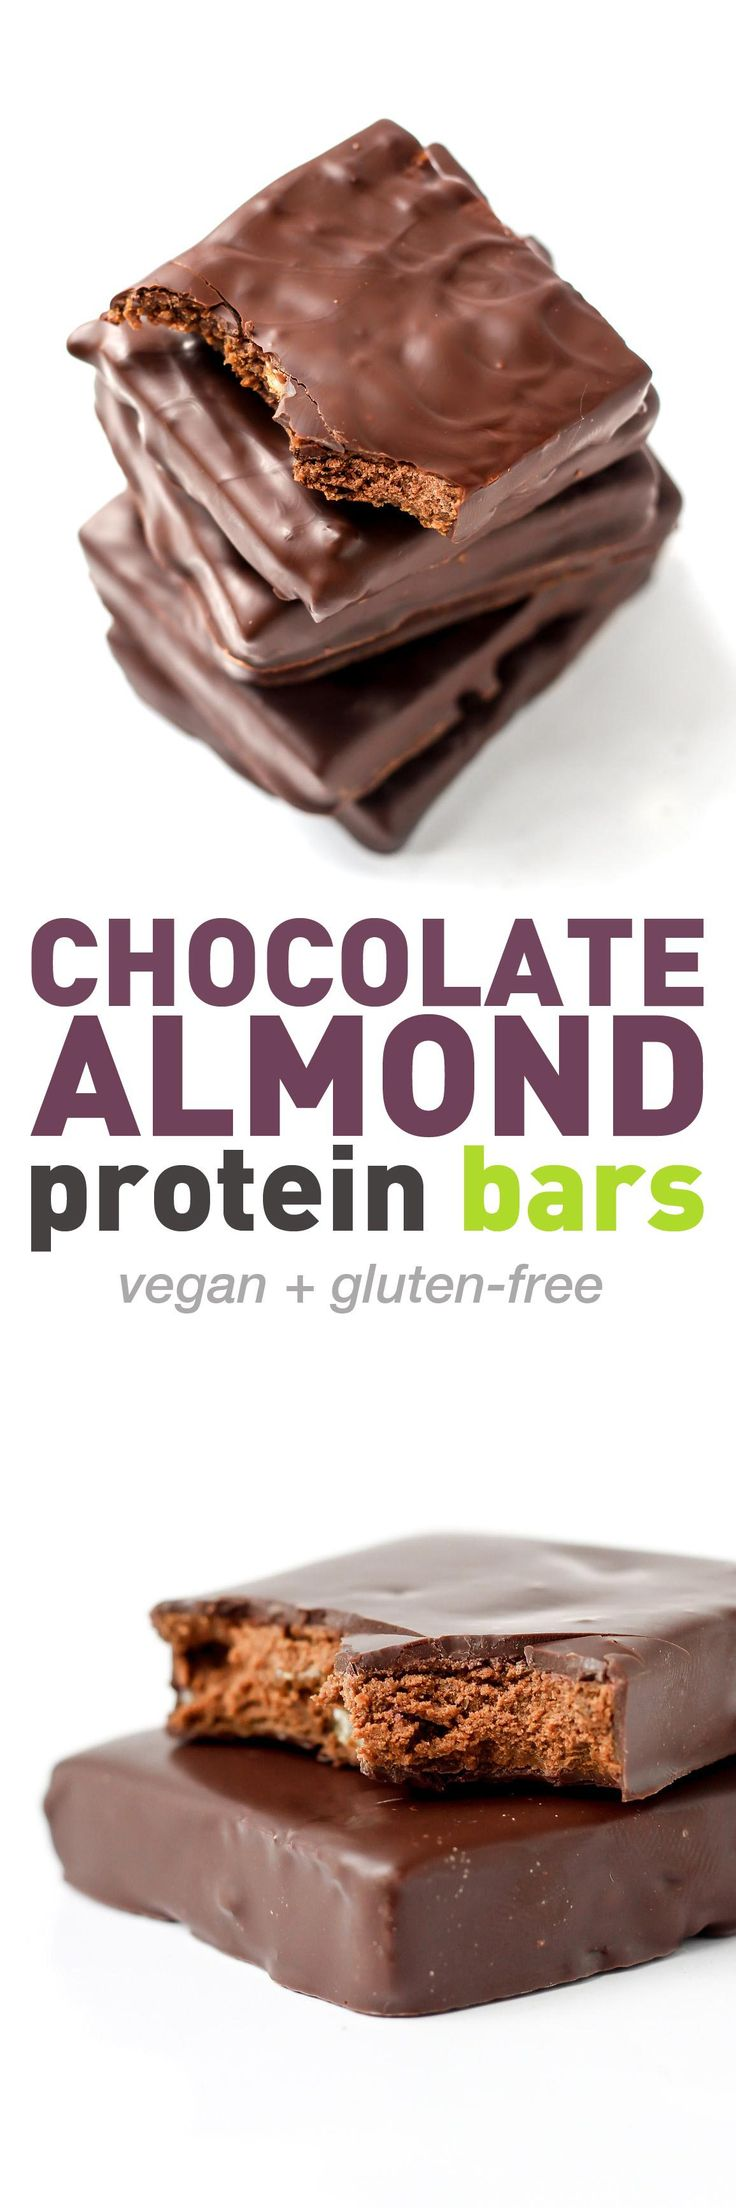 (or use as a template for other flavors): protein powder, date syrup, almond butter, vanilla extract, chocolate chips, almonds, brown rice crisps